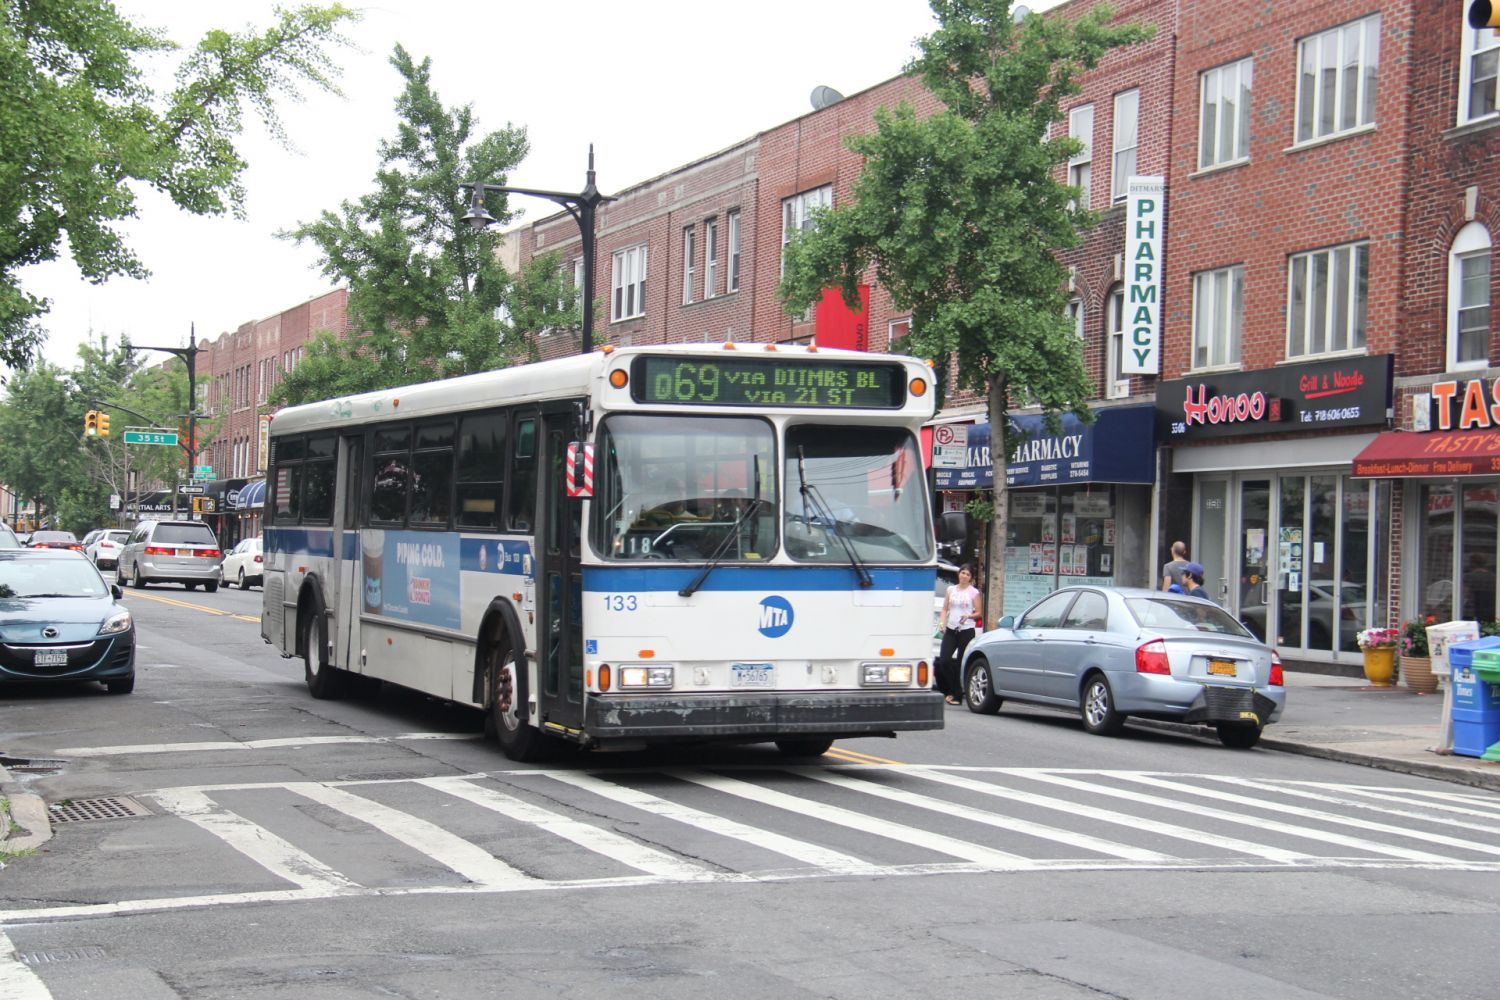 1995 Orion V #133 Q69 at Ditmars Blvd and 33rd Street